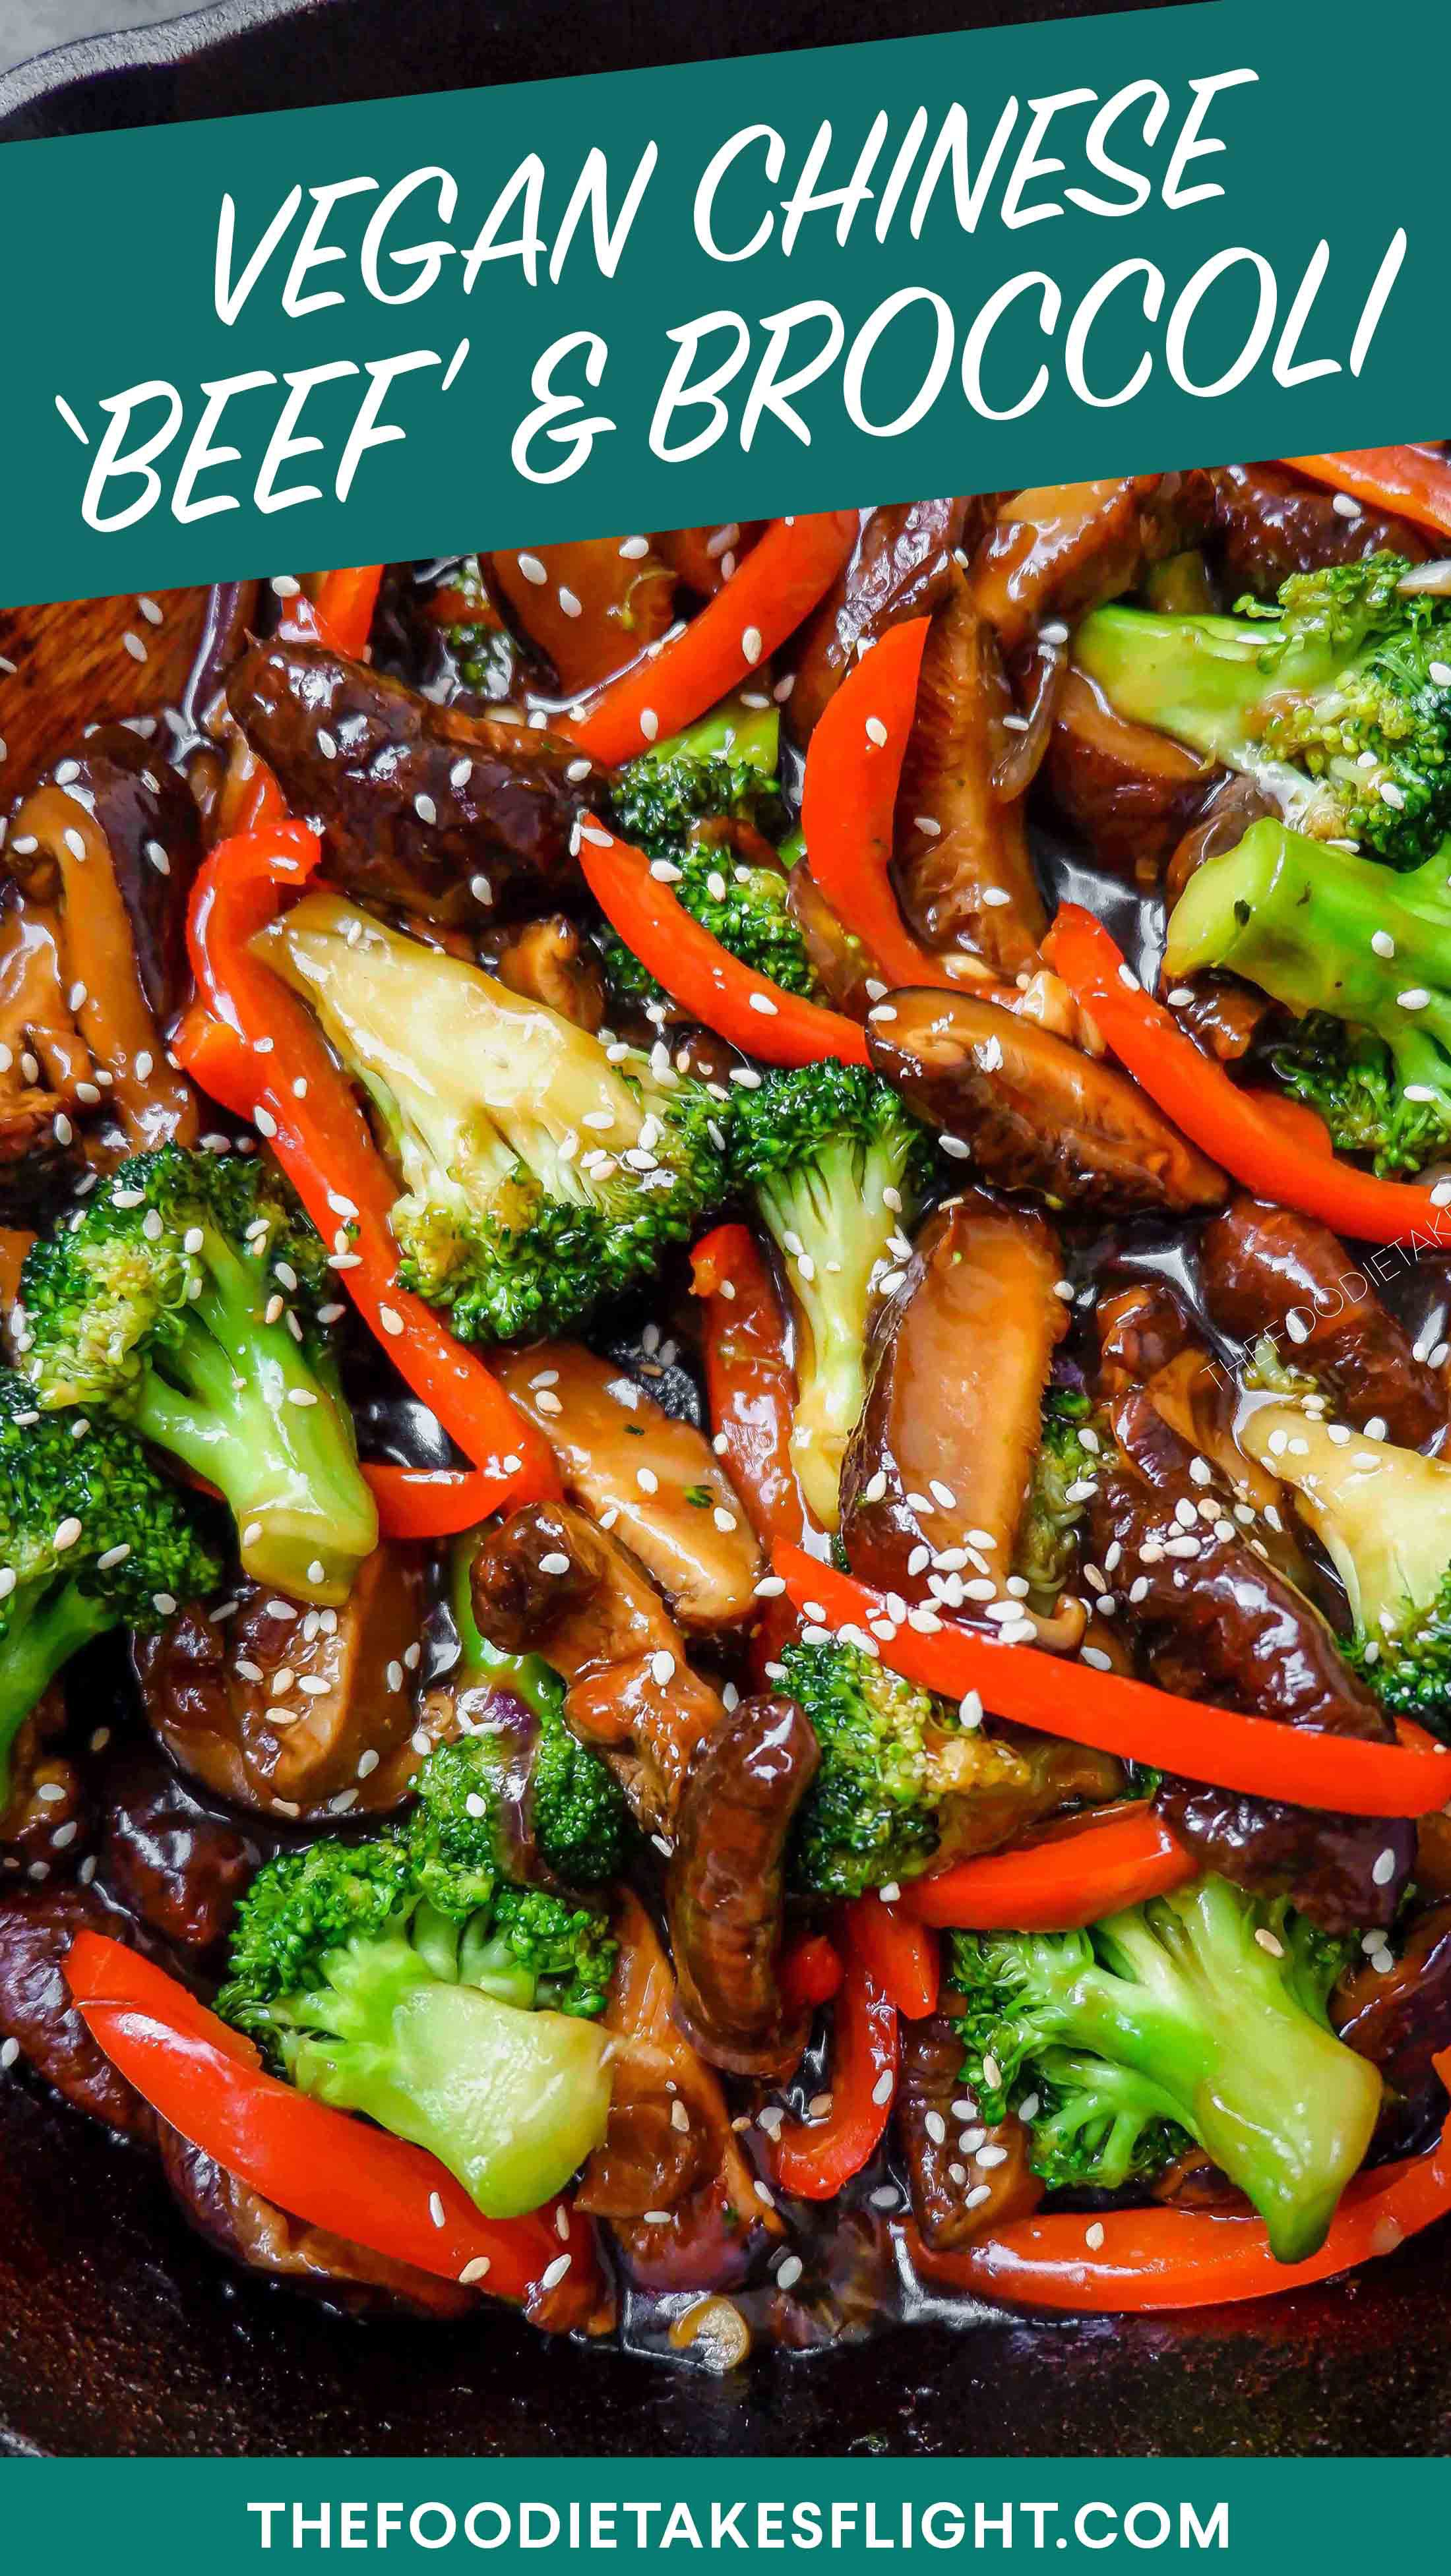 Chinese Style No Beef And Broccoli Vegan Vegan Chinese Food Broccoli Dishes Vegan Dinner Recipes